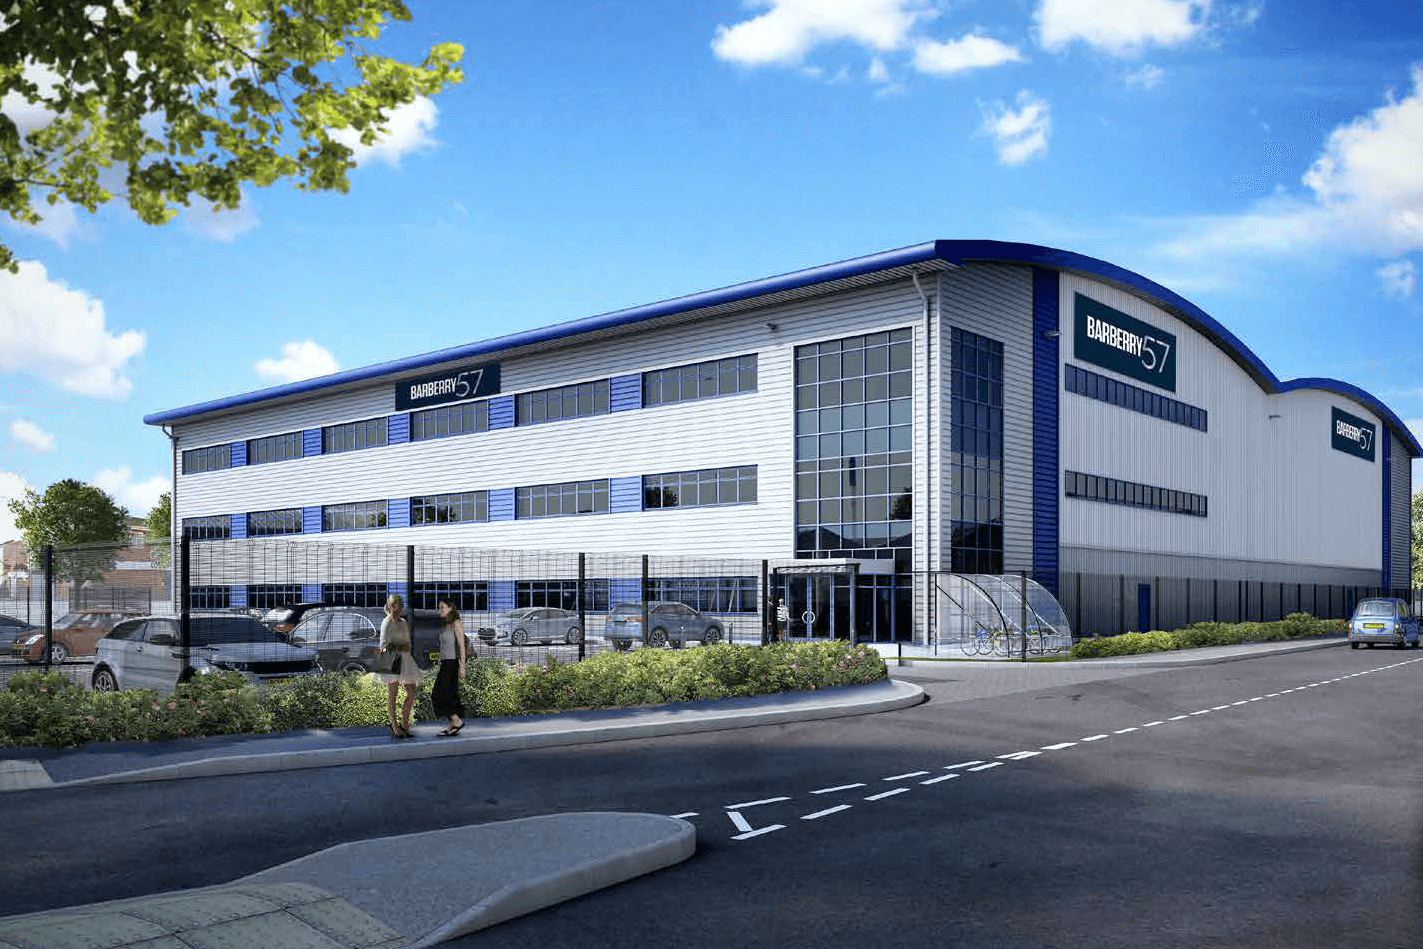 An artist's impression of the Barberry 57 development at the Advanced Manufacturing Hub in Birmingham.